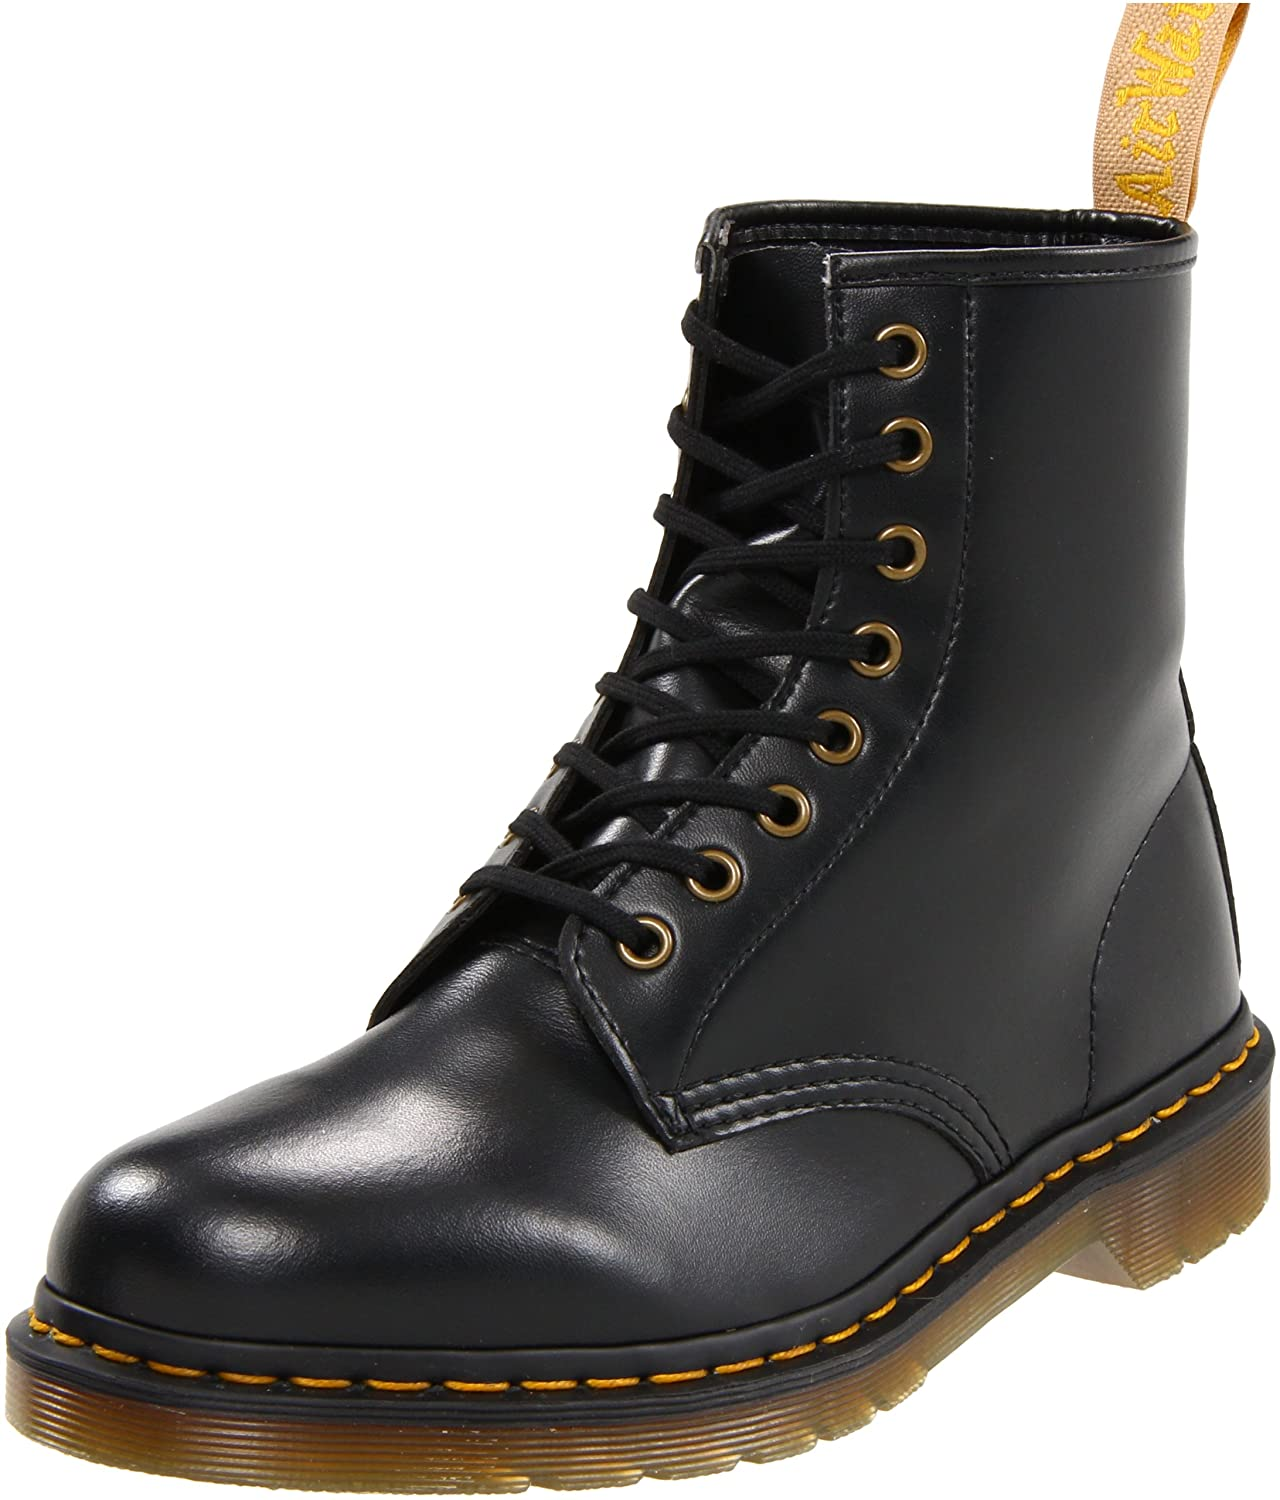 Image result for Doc Martens